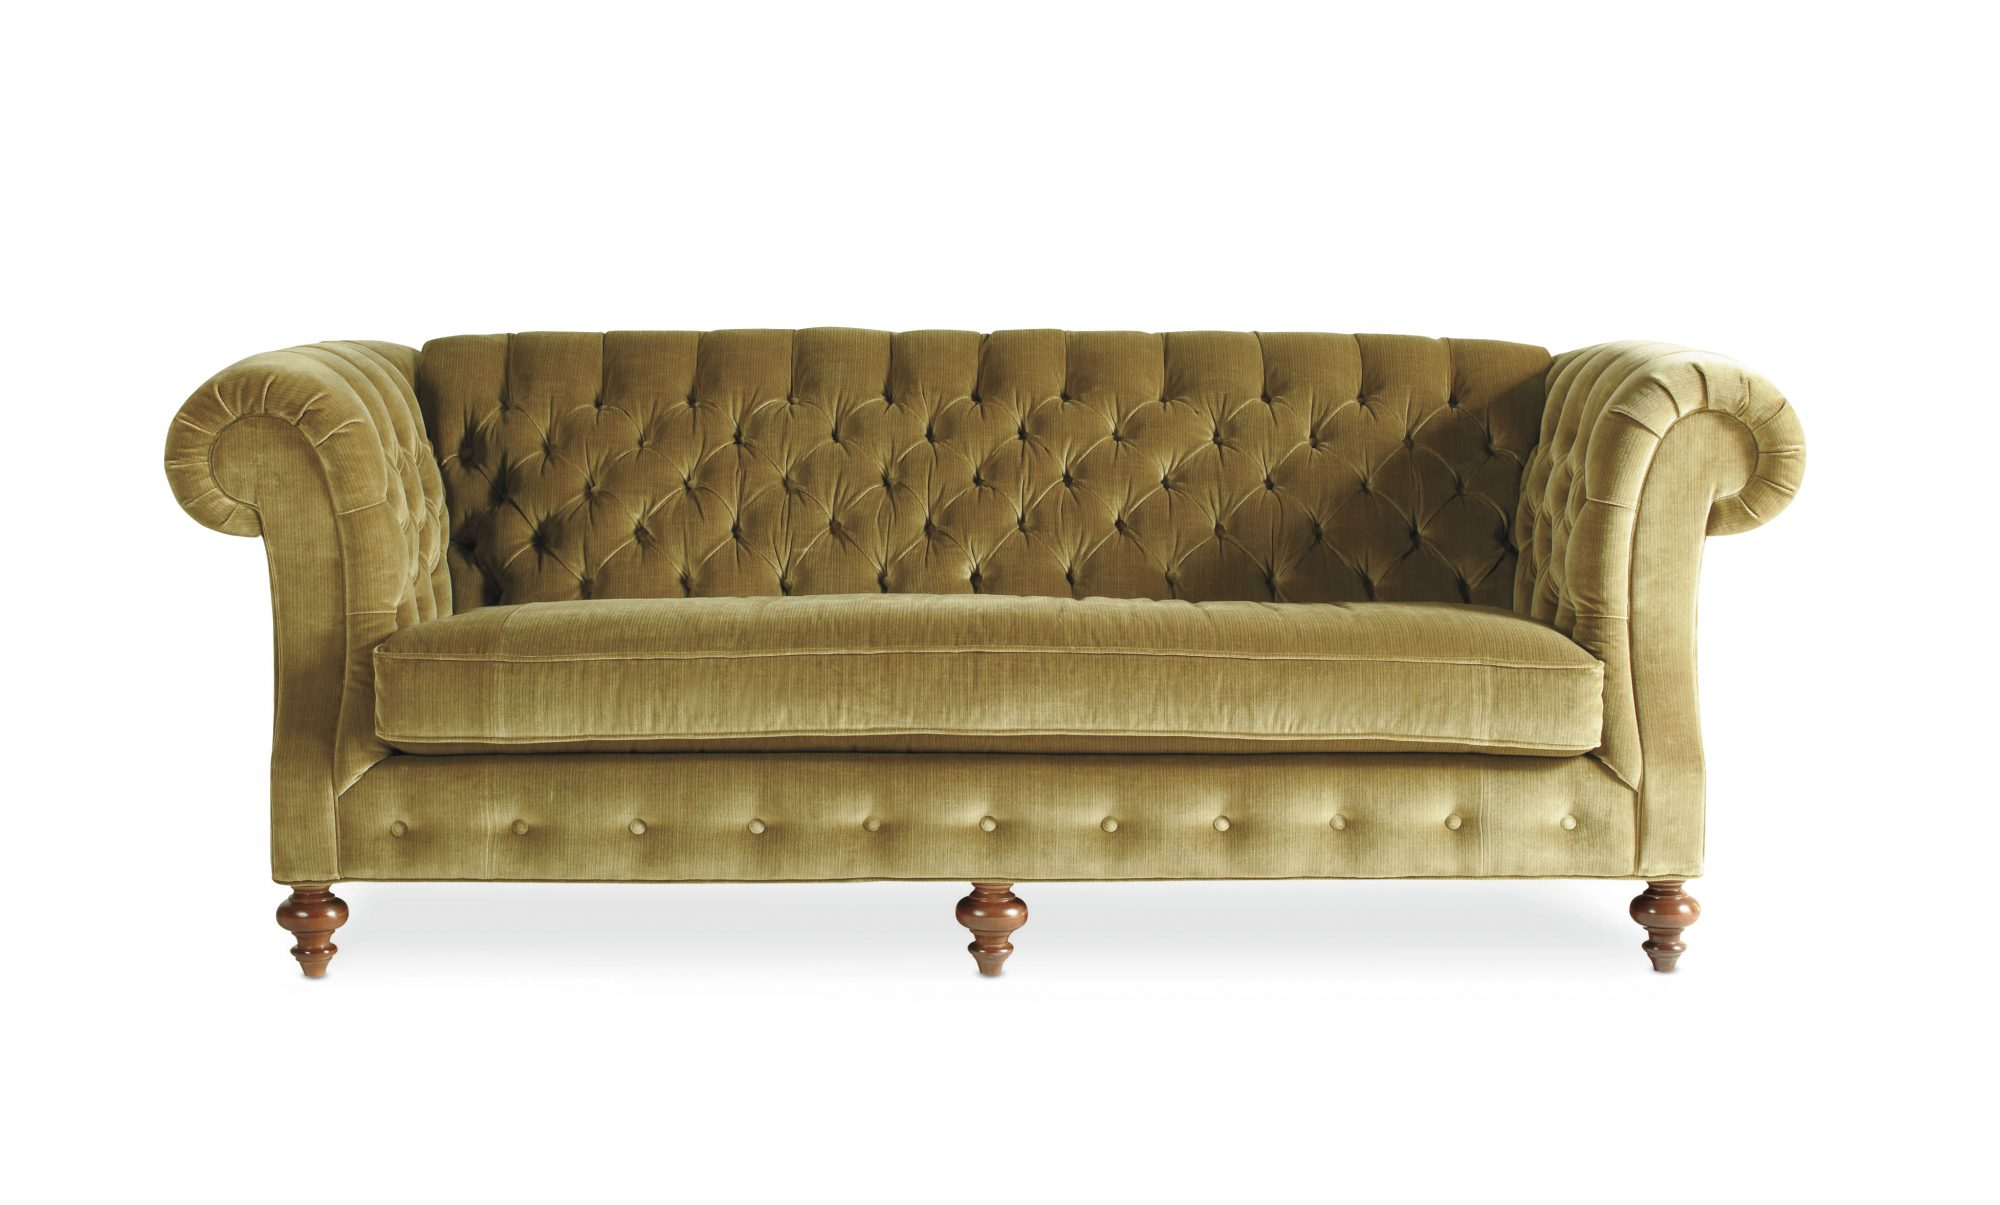 1120 Chichester Sofa